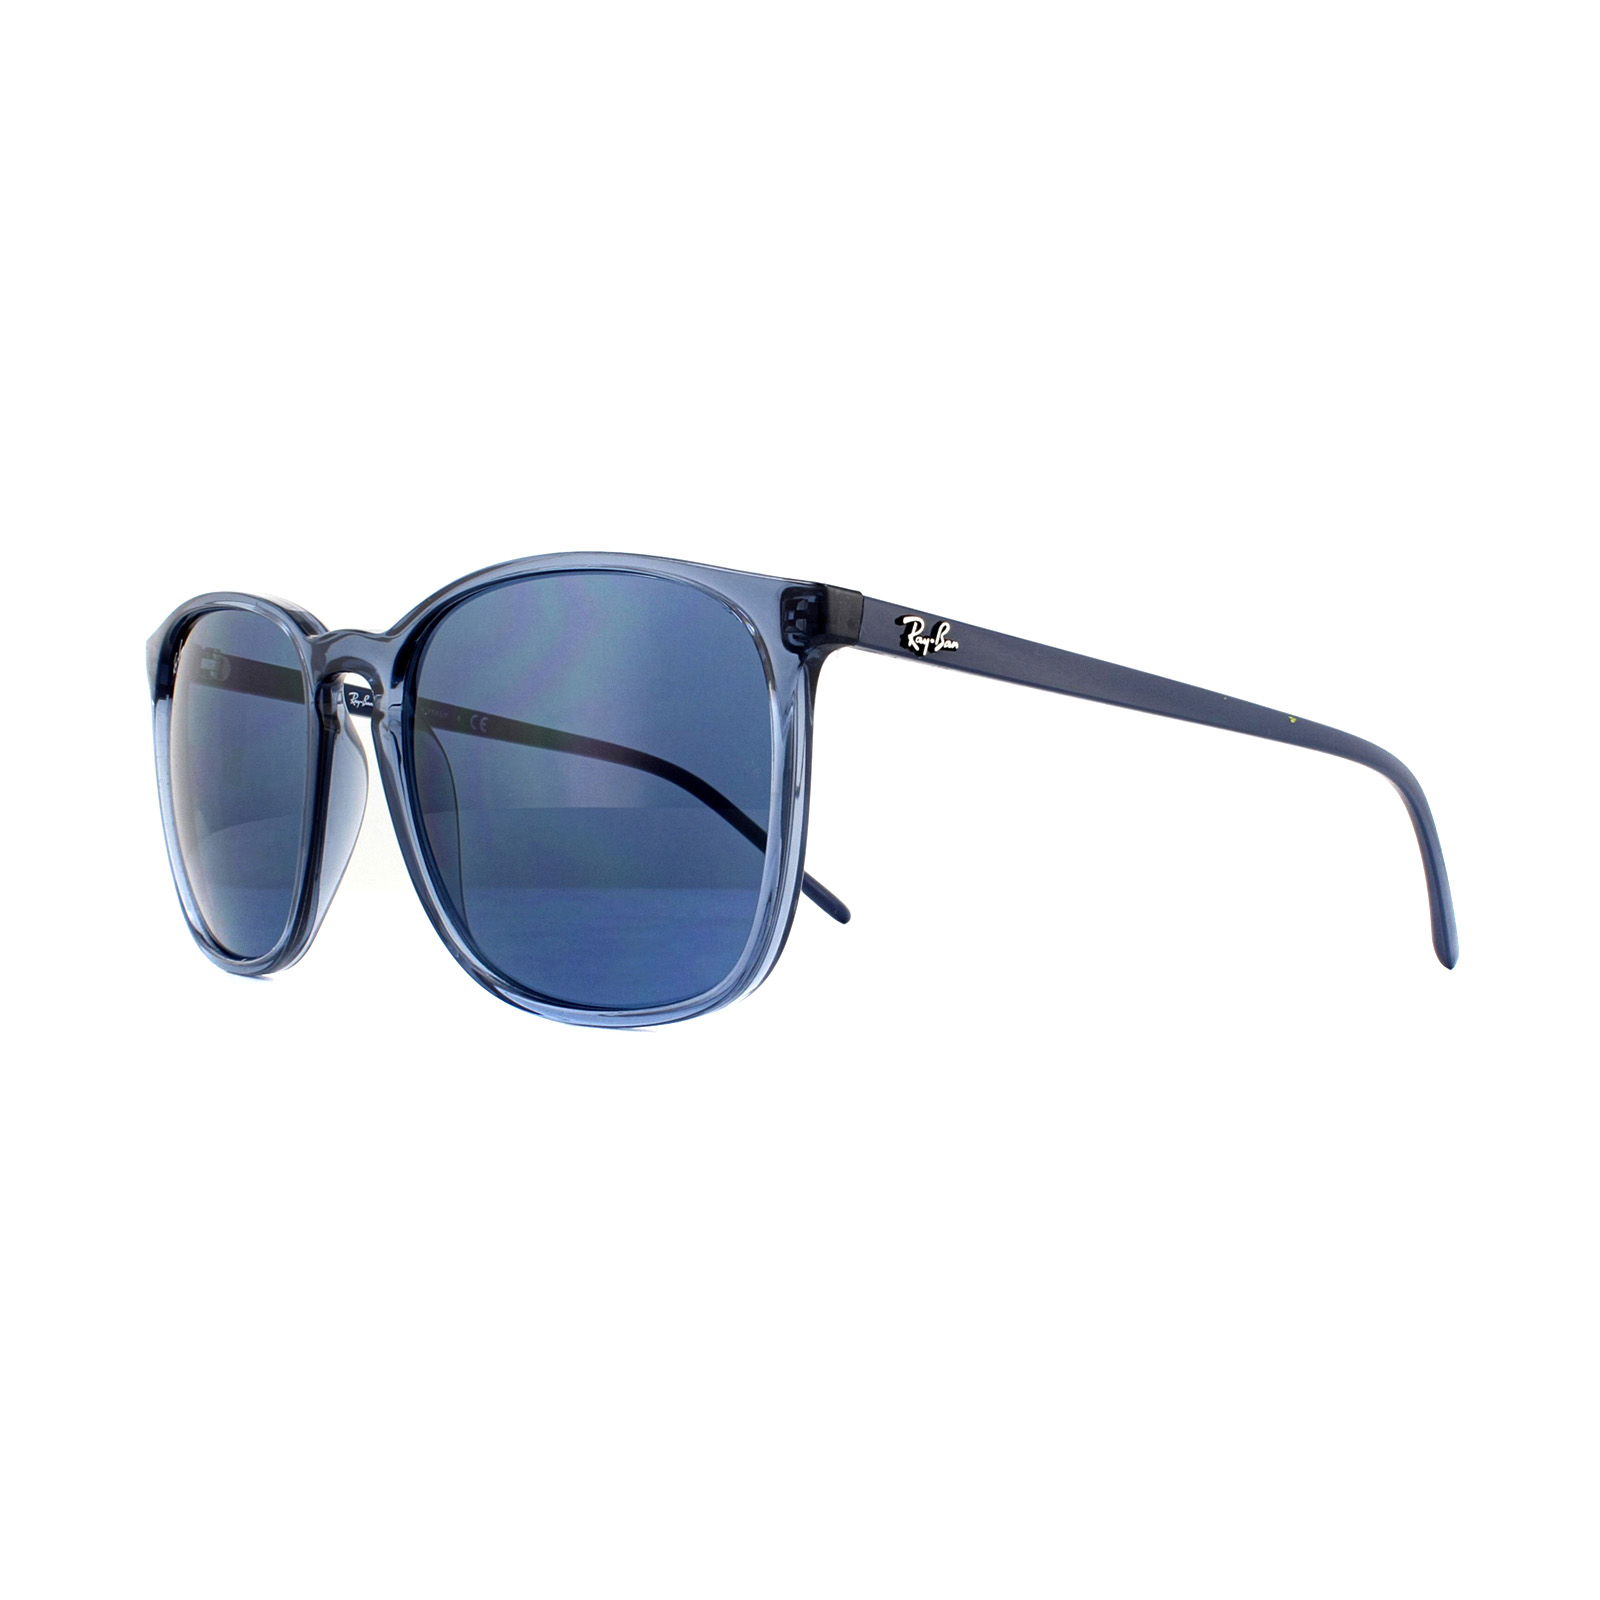 91f8087c639f Sentinel Ray-Ban Sunglasses RB4387 639980 Transparrent Blue Blue Gradient